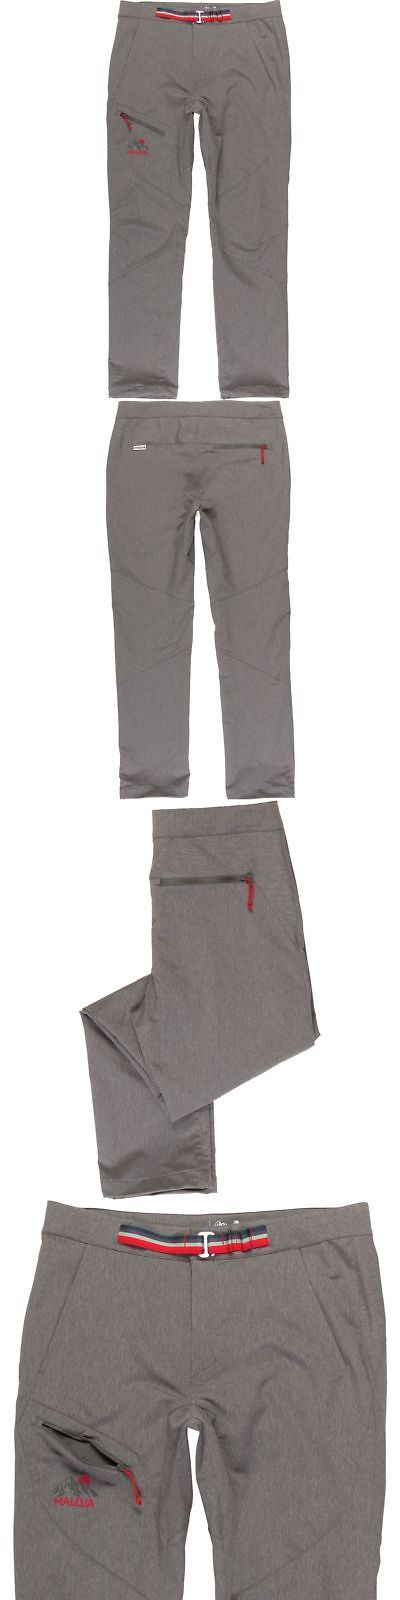 Clothing 101685: Maloja Beifussm. Pant - Men S Charcoal Xl -> BUY IT NOW ONLY: $87.97 on eBay!